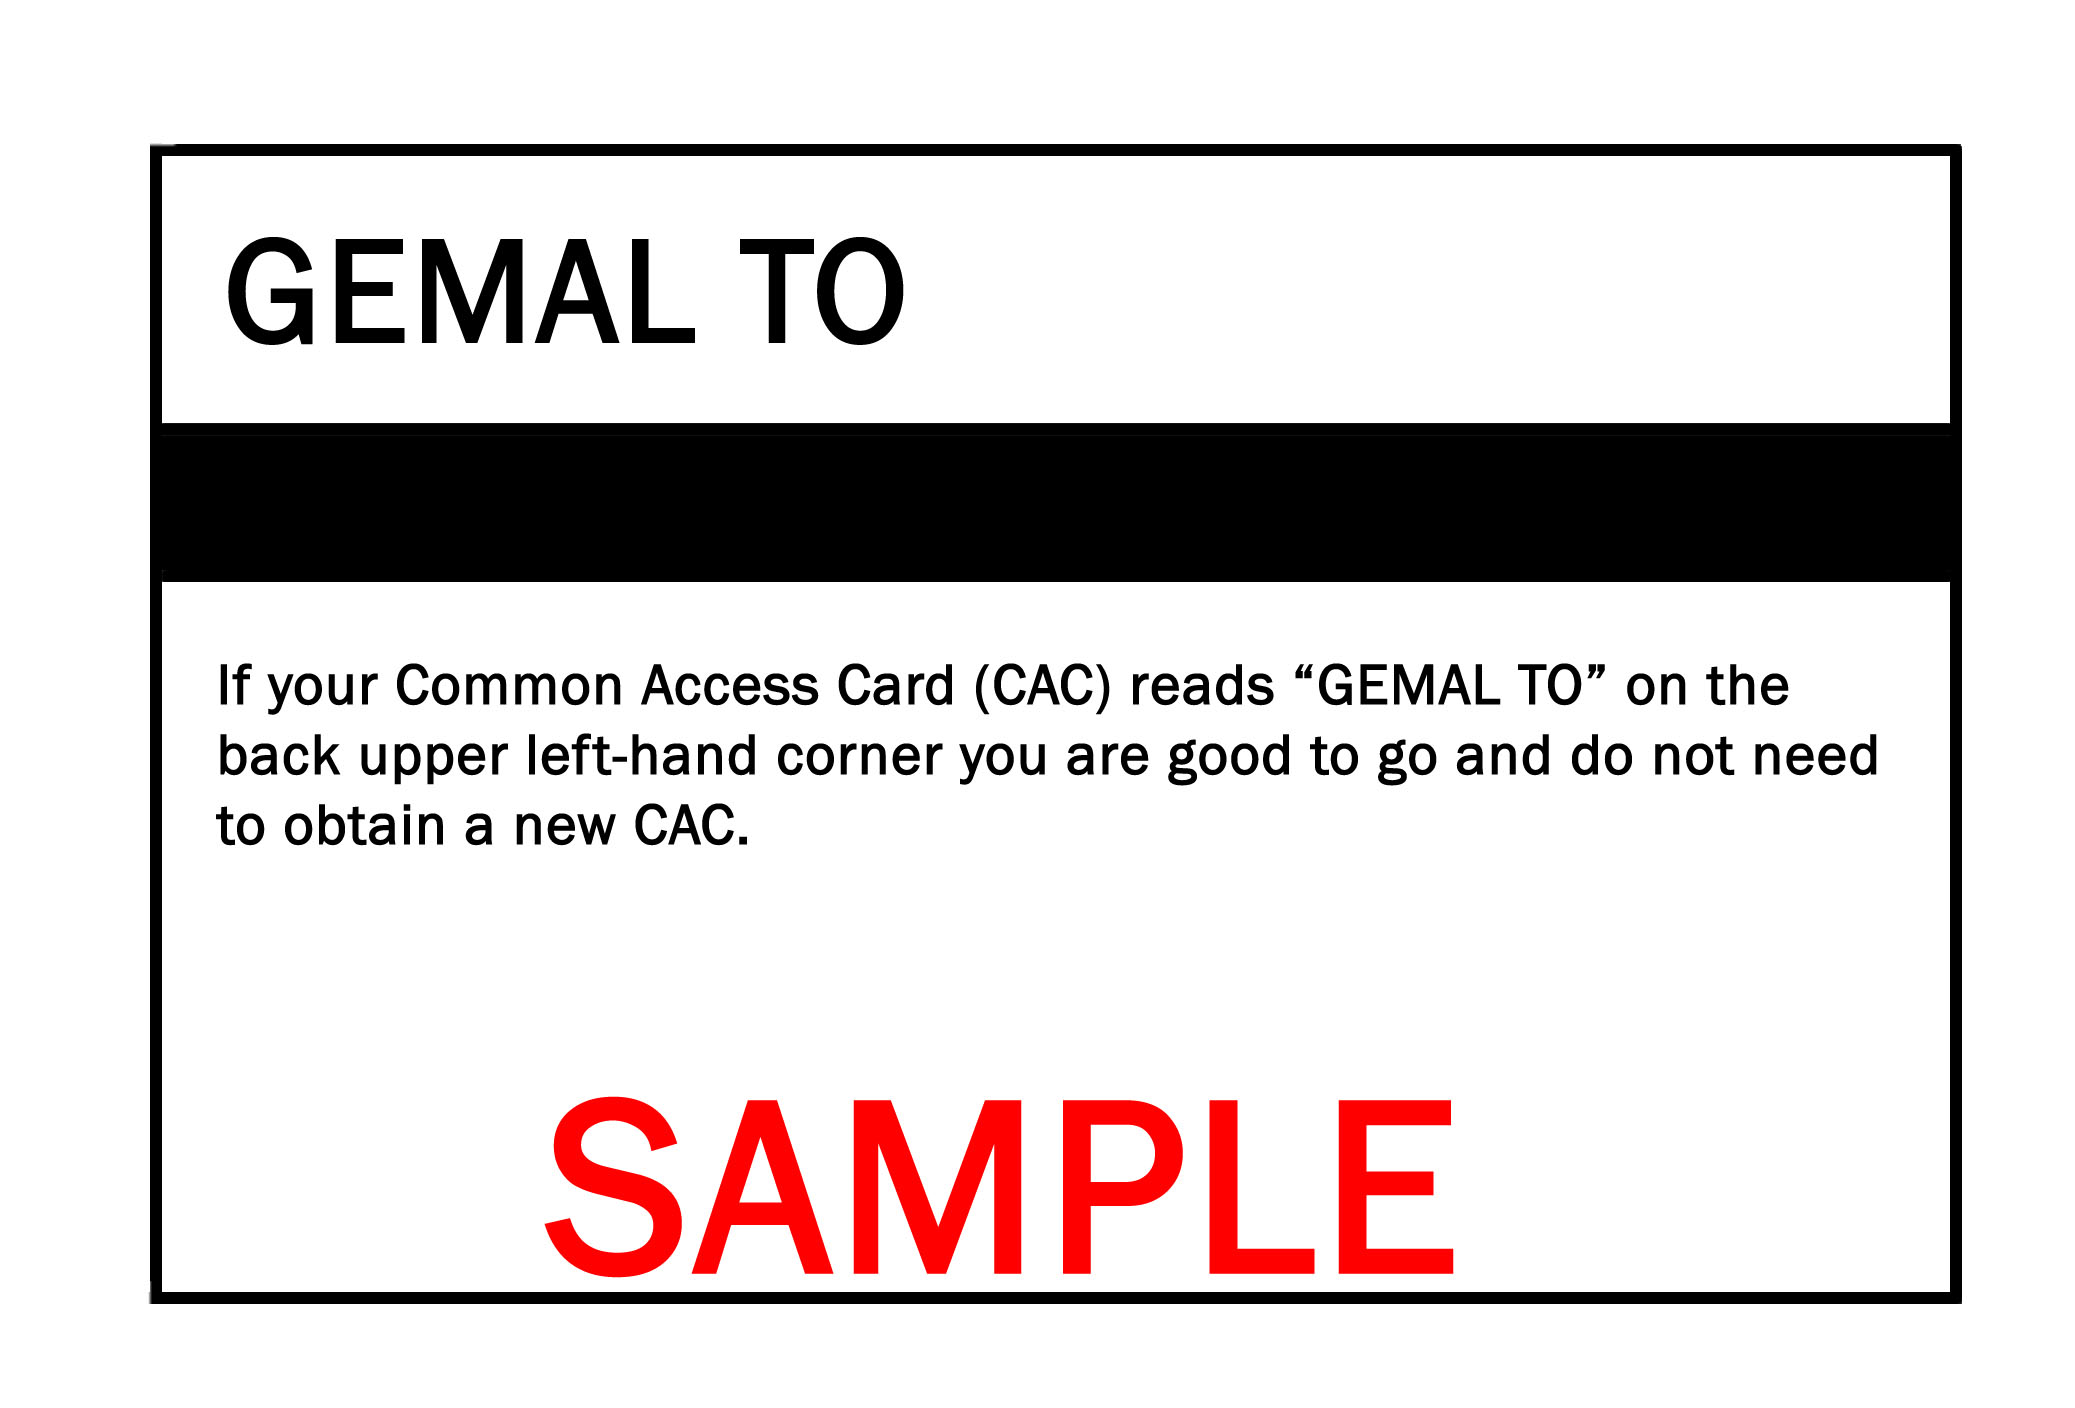 Older Common Access Cards require replacement